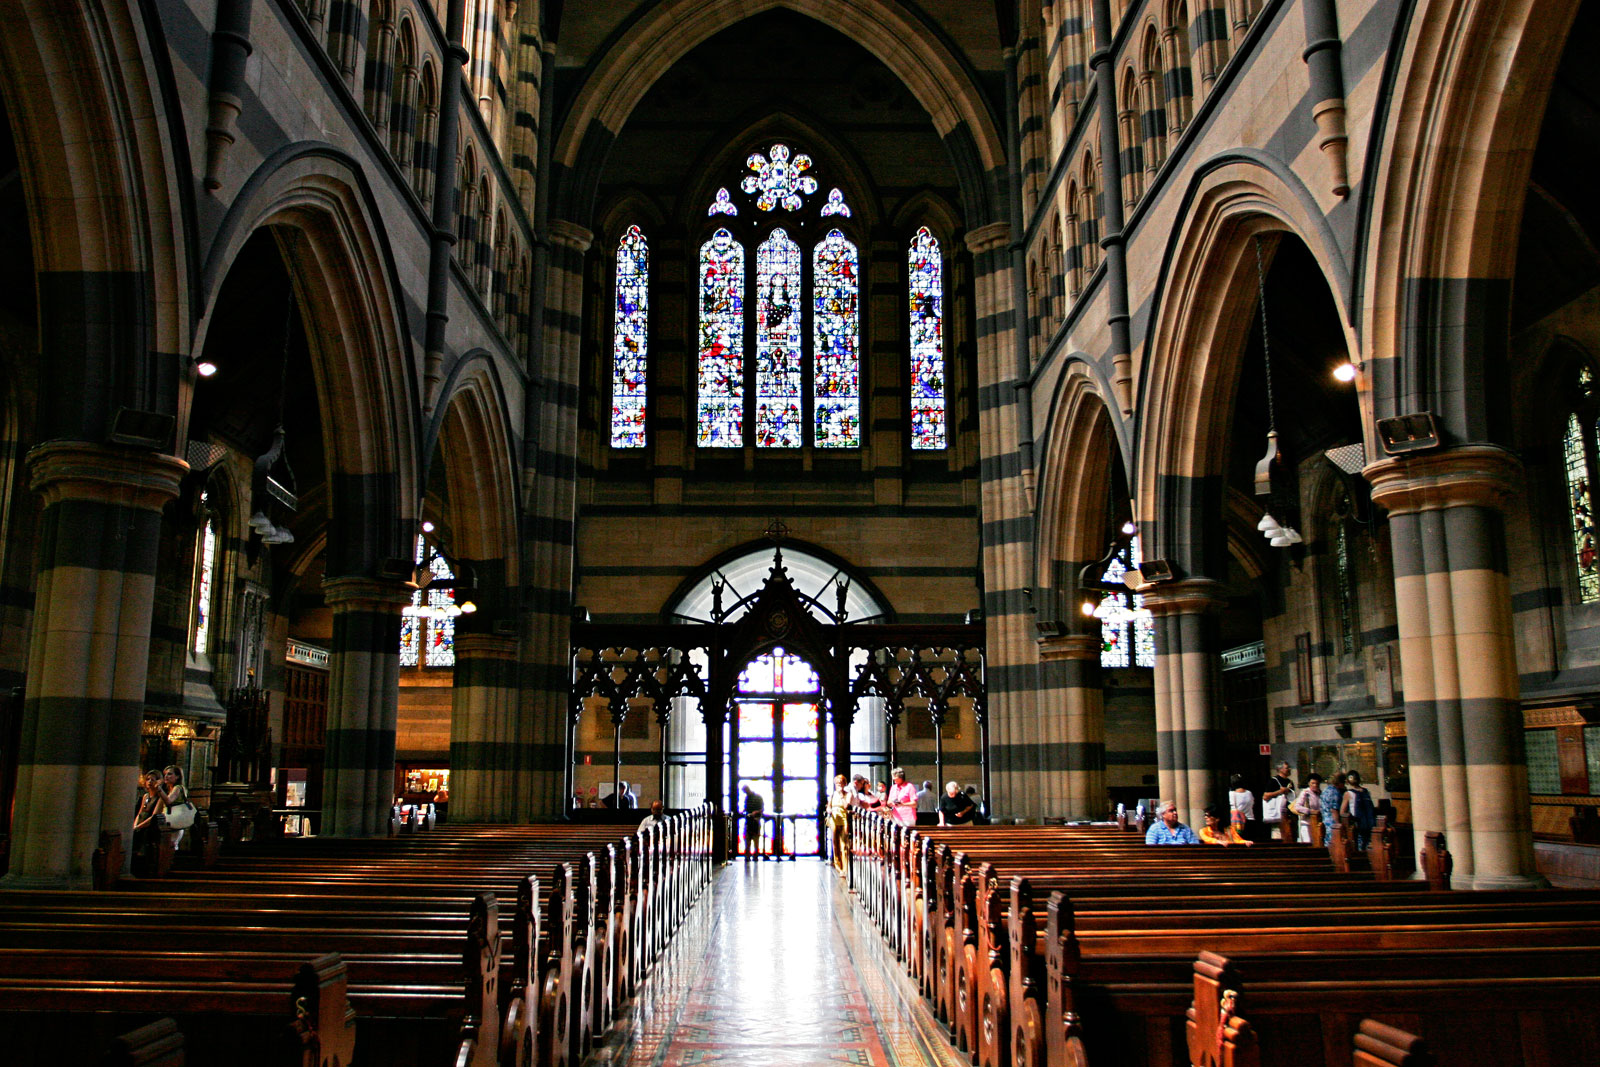 St. Paul's Cathedral in Melbourne, Australia